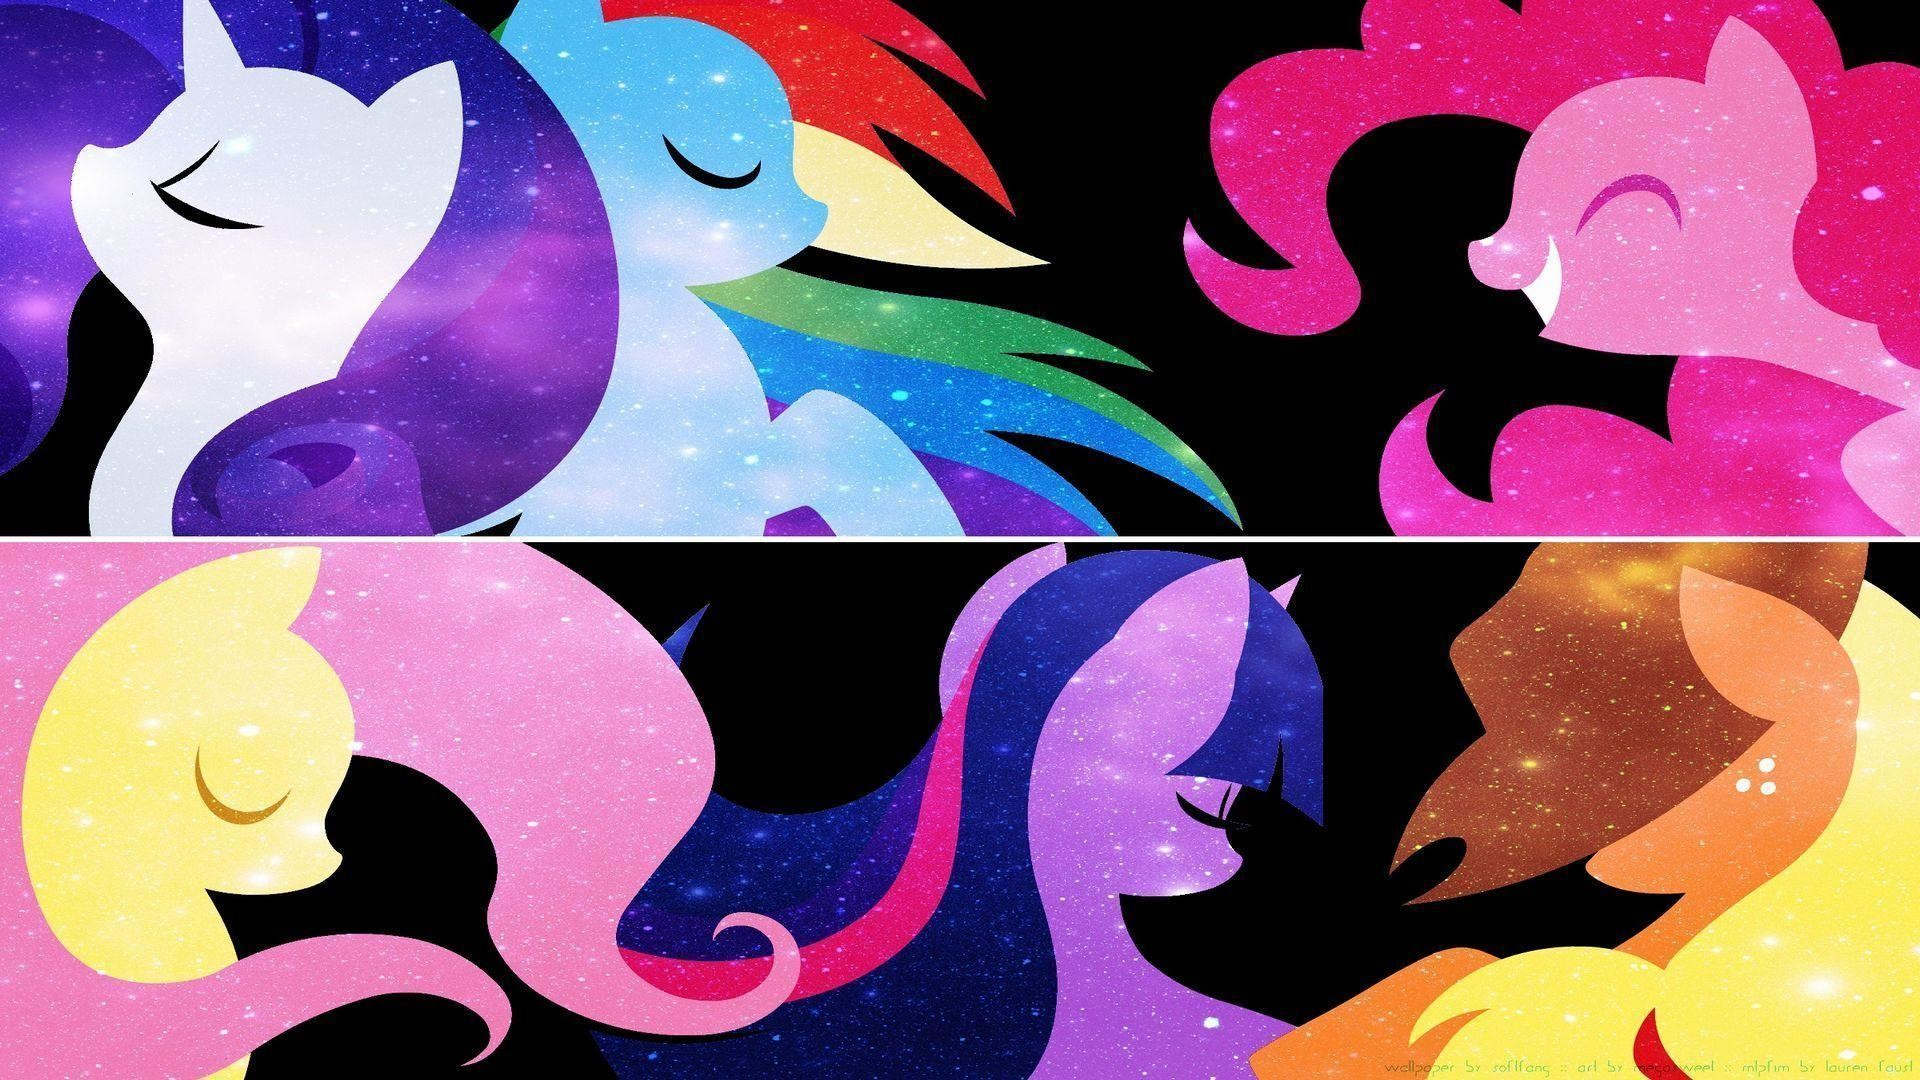 1920x1080 My Little Pony My Little Pony Wallpaper HD For Android | Cartoons .